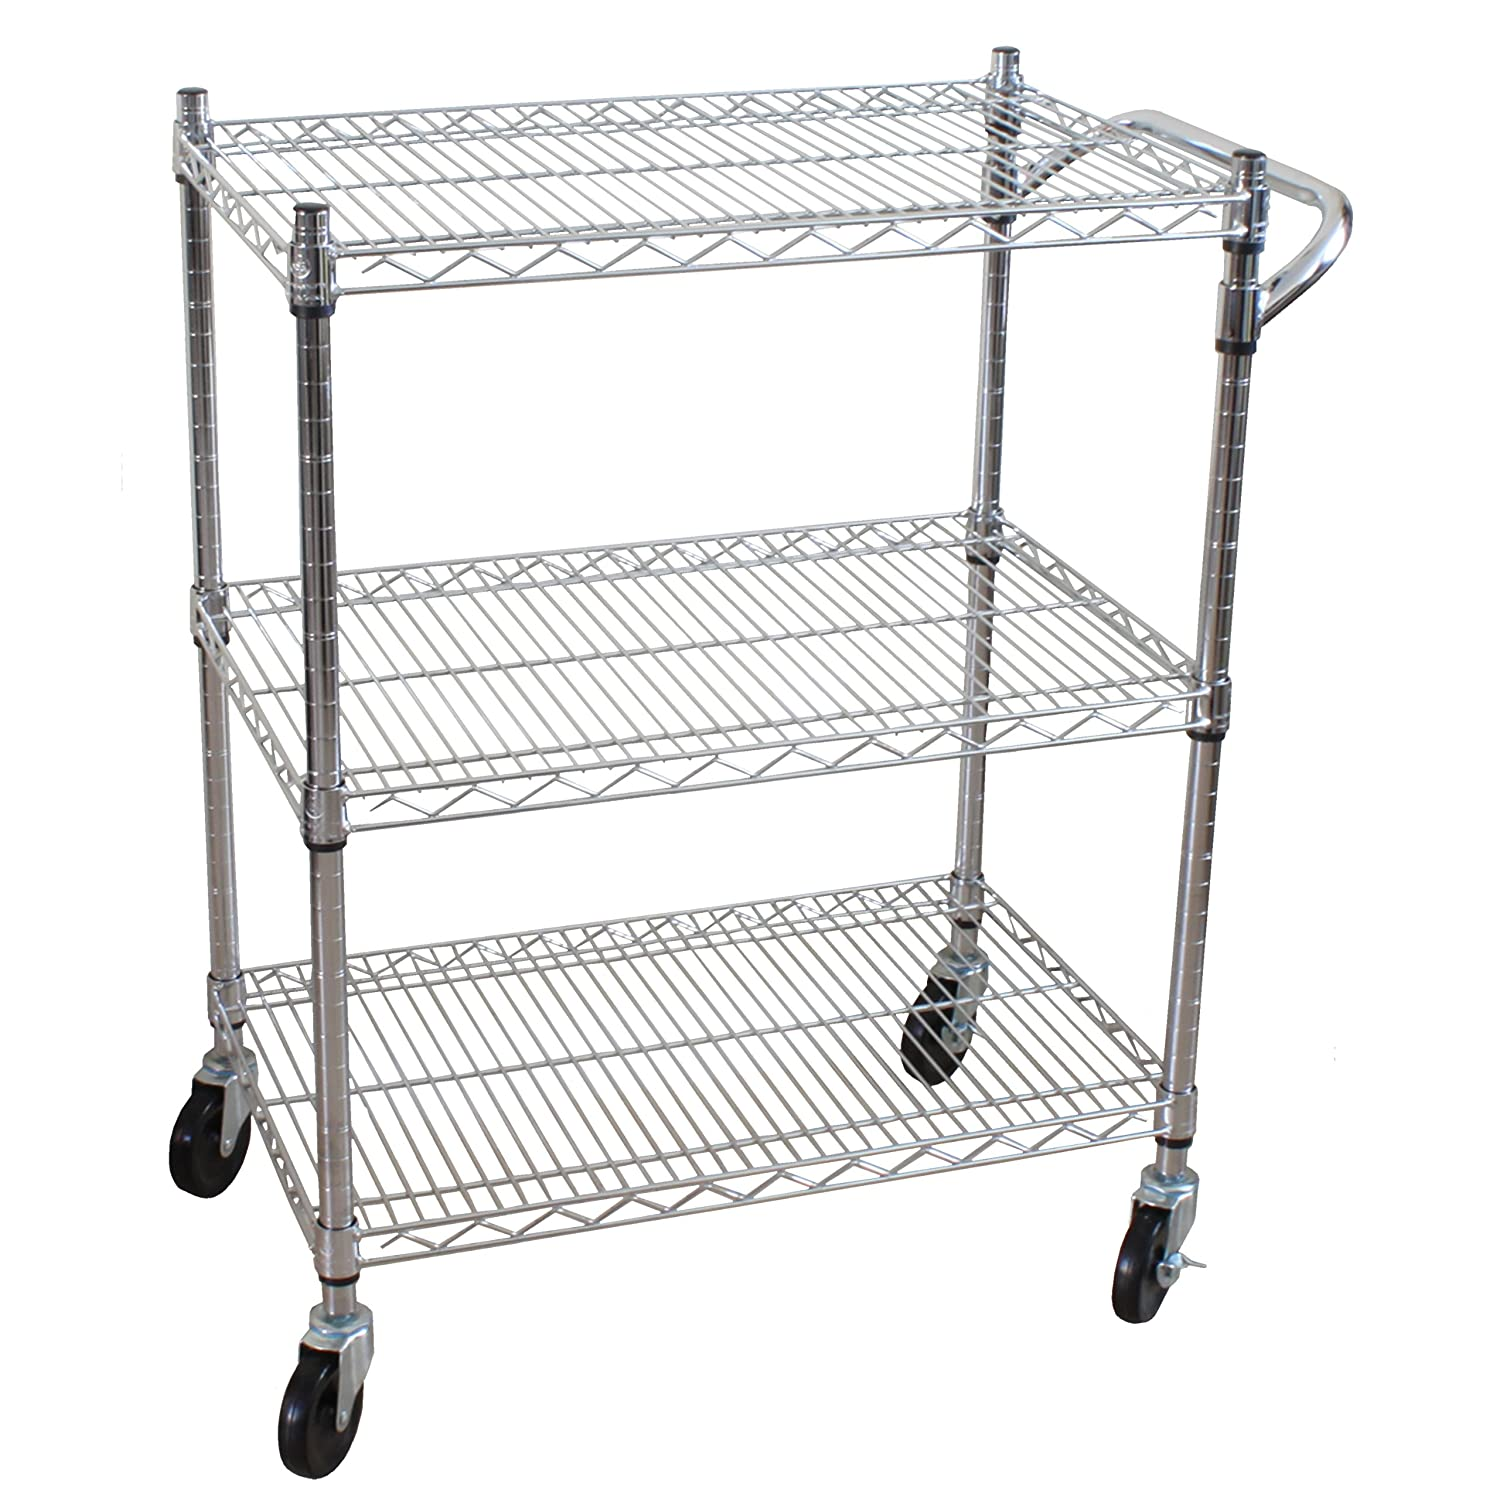 Amazon.com: Oceanstar 3 Tier Heavy Duty All Purpose Utility Cart, Chrome:  Home U0026 Kitchen